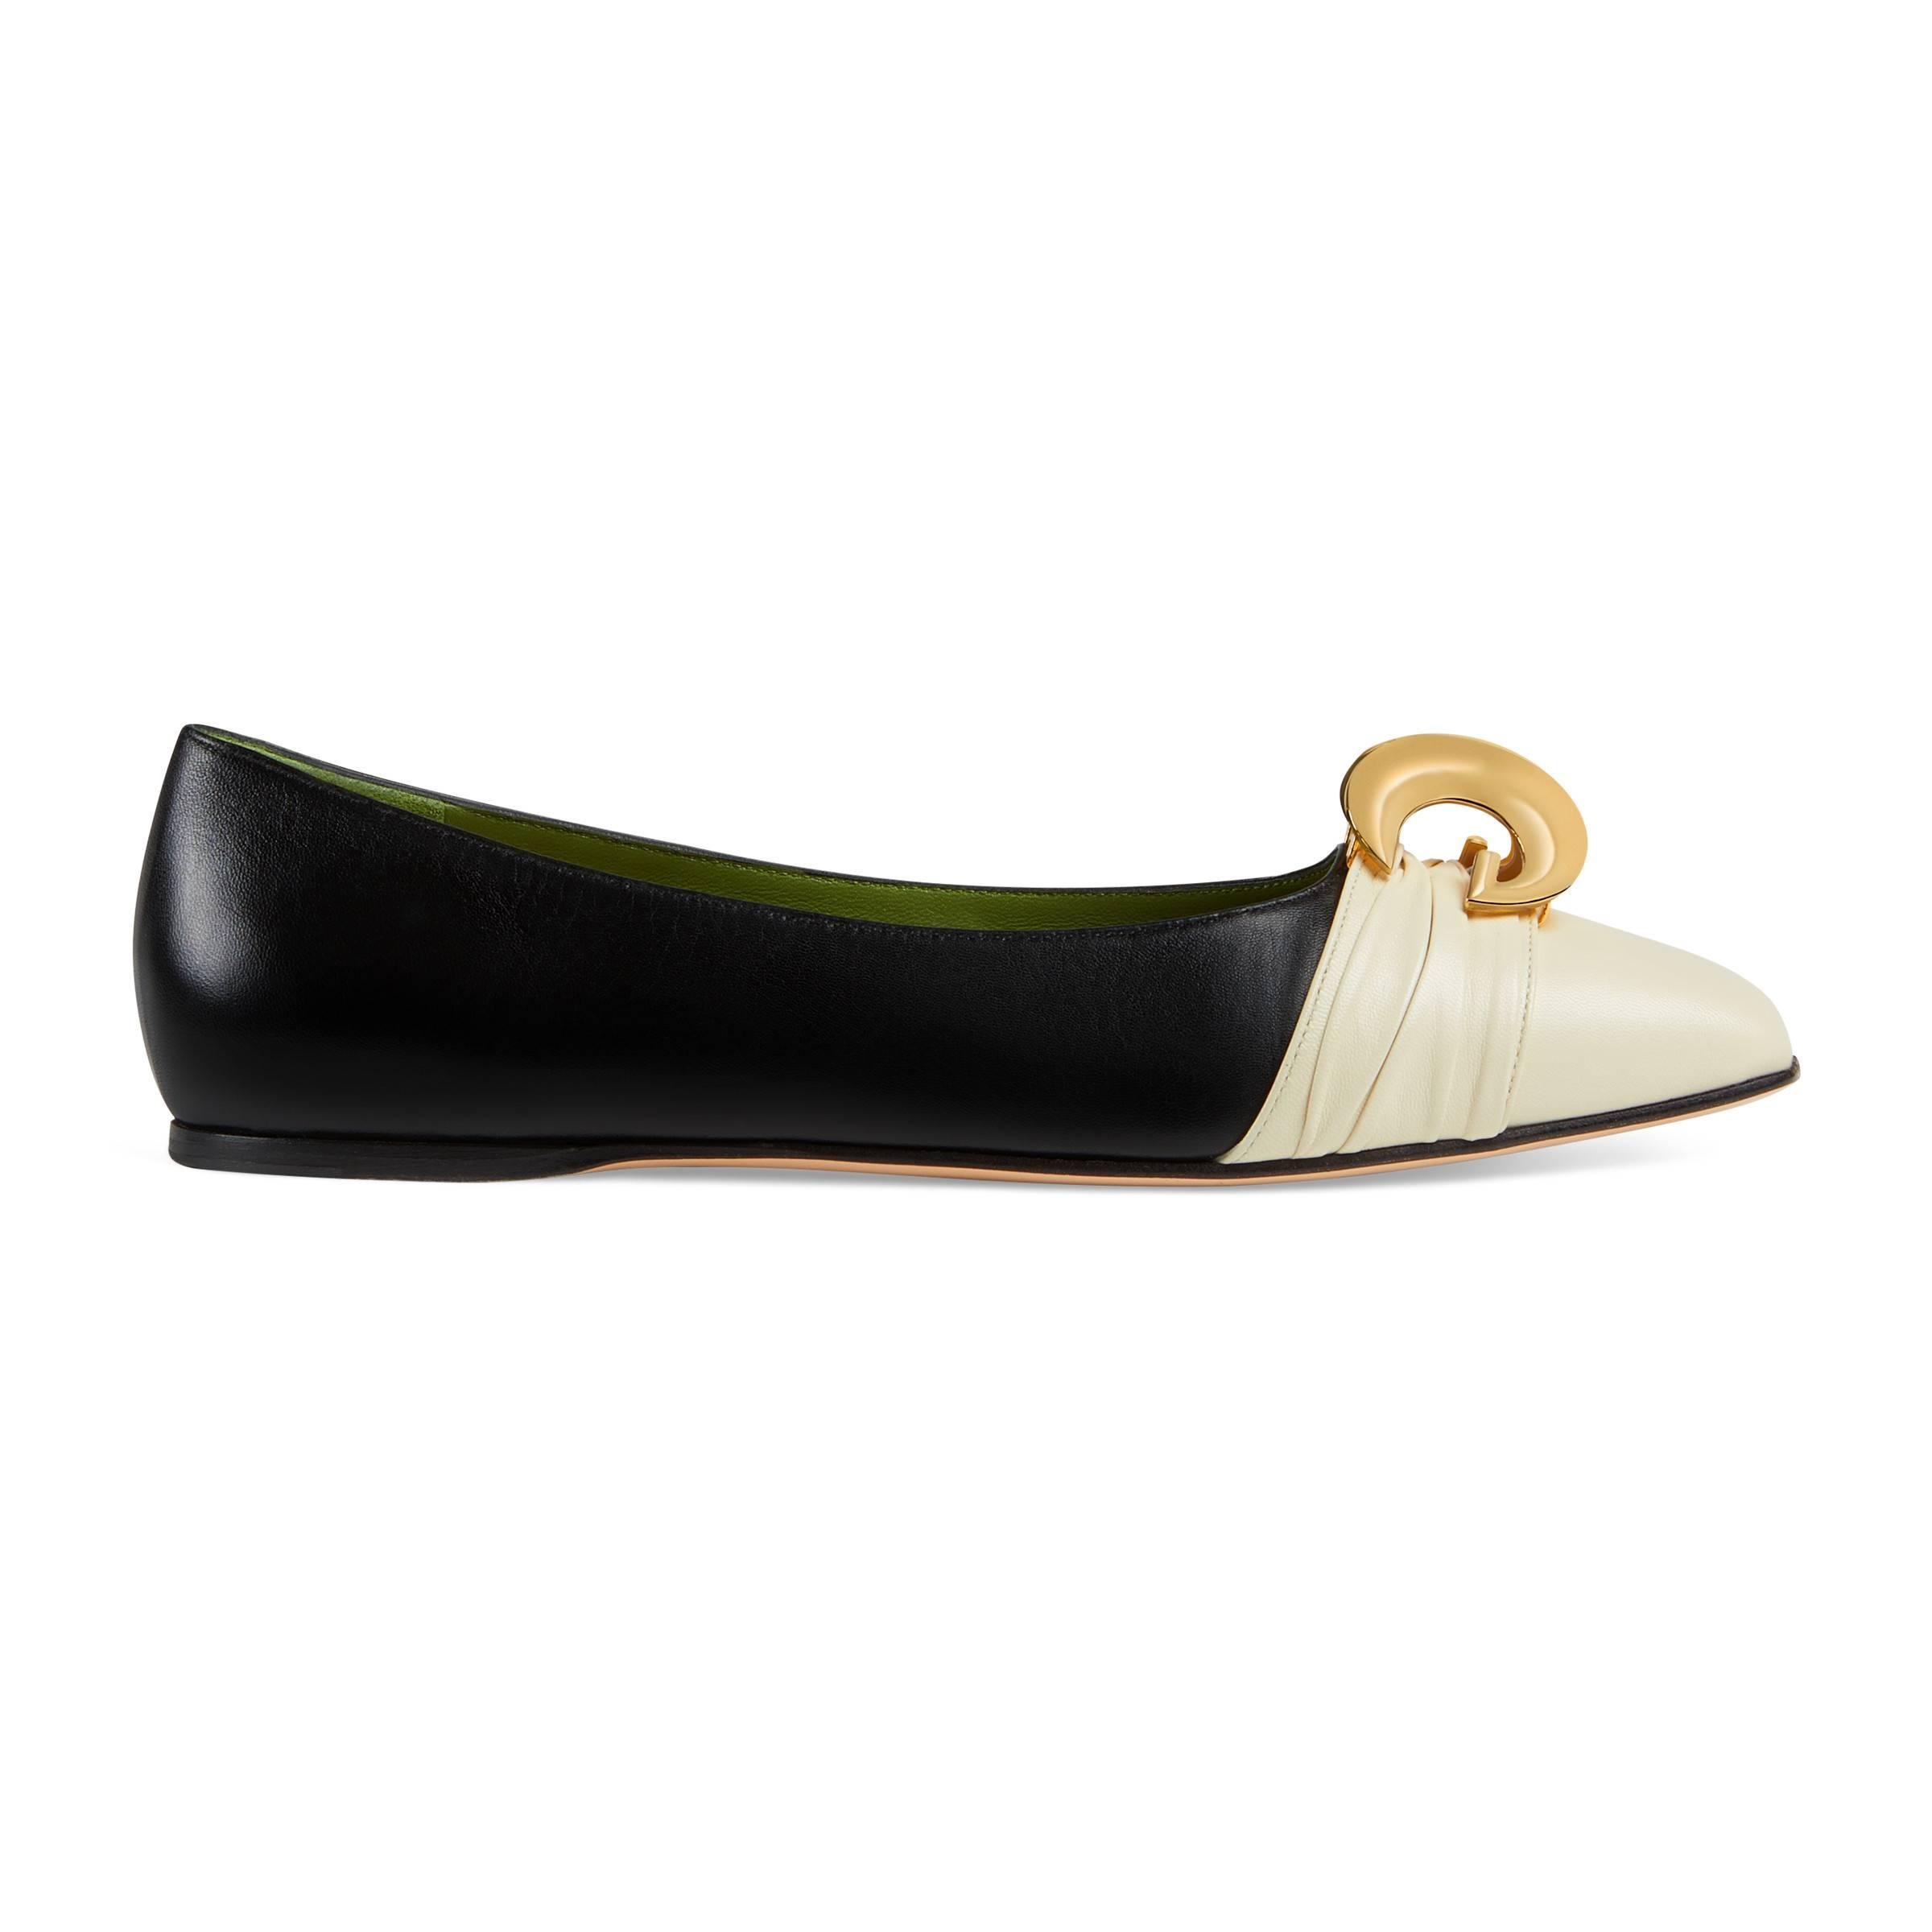 55e8f5c55c7 Gucci - Black Leather Ballet Flat With Half Moon GG - Lyst. View fullscreen